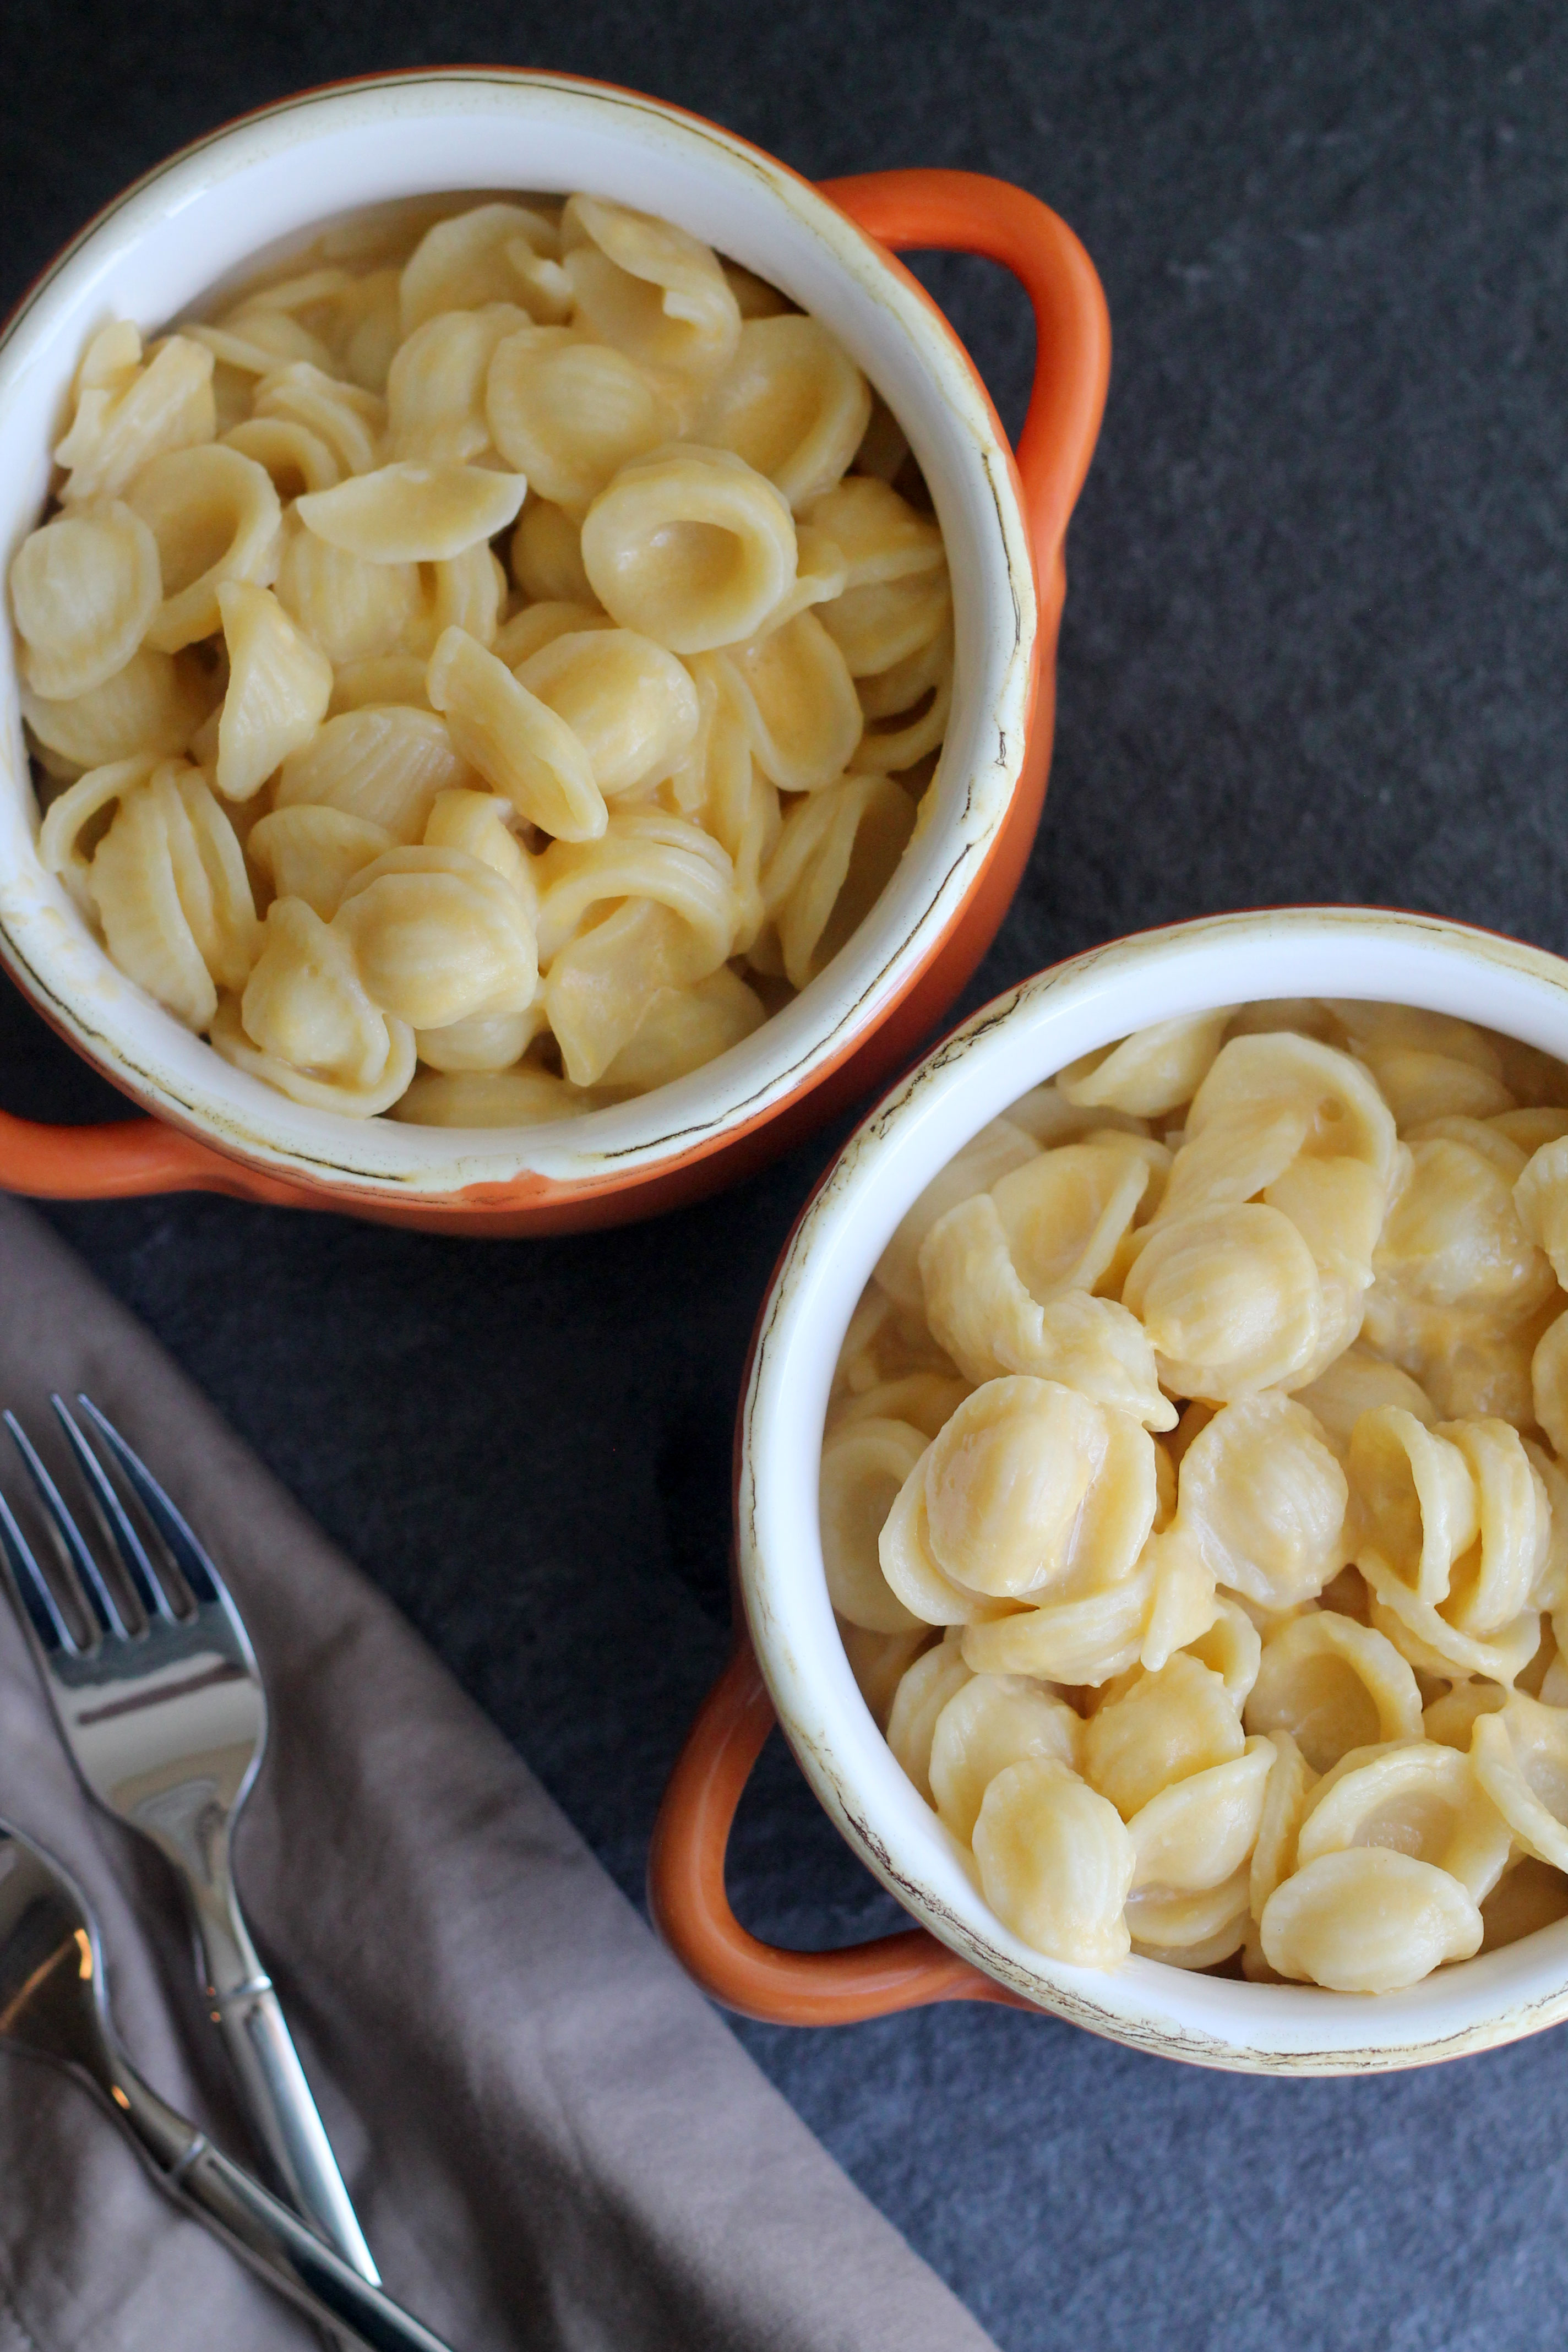 This Butternut Squash Mac and Cheese is Cheesy, Satisfying and Full of Flavor